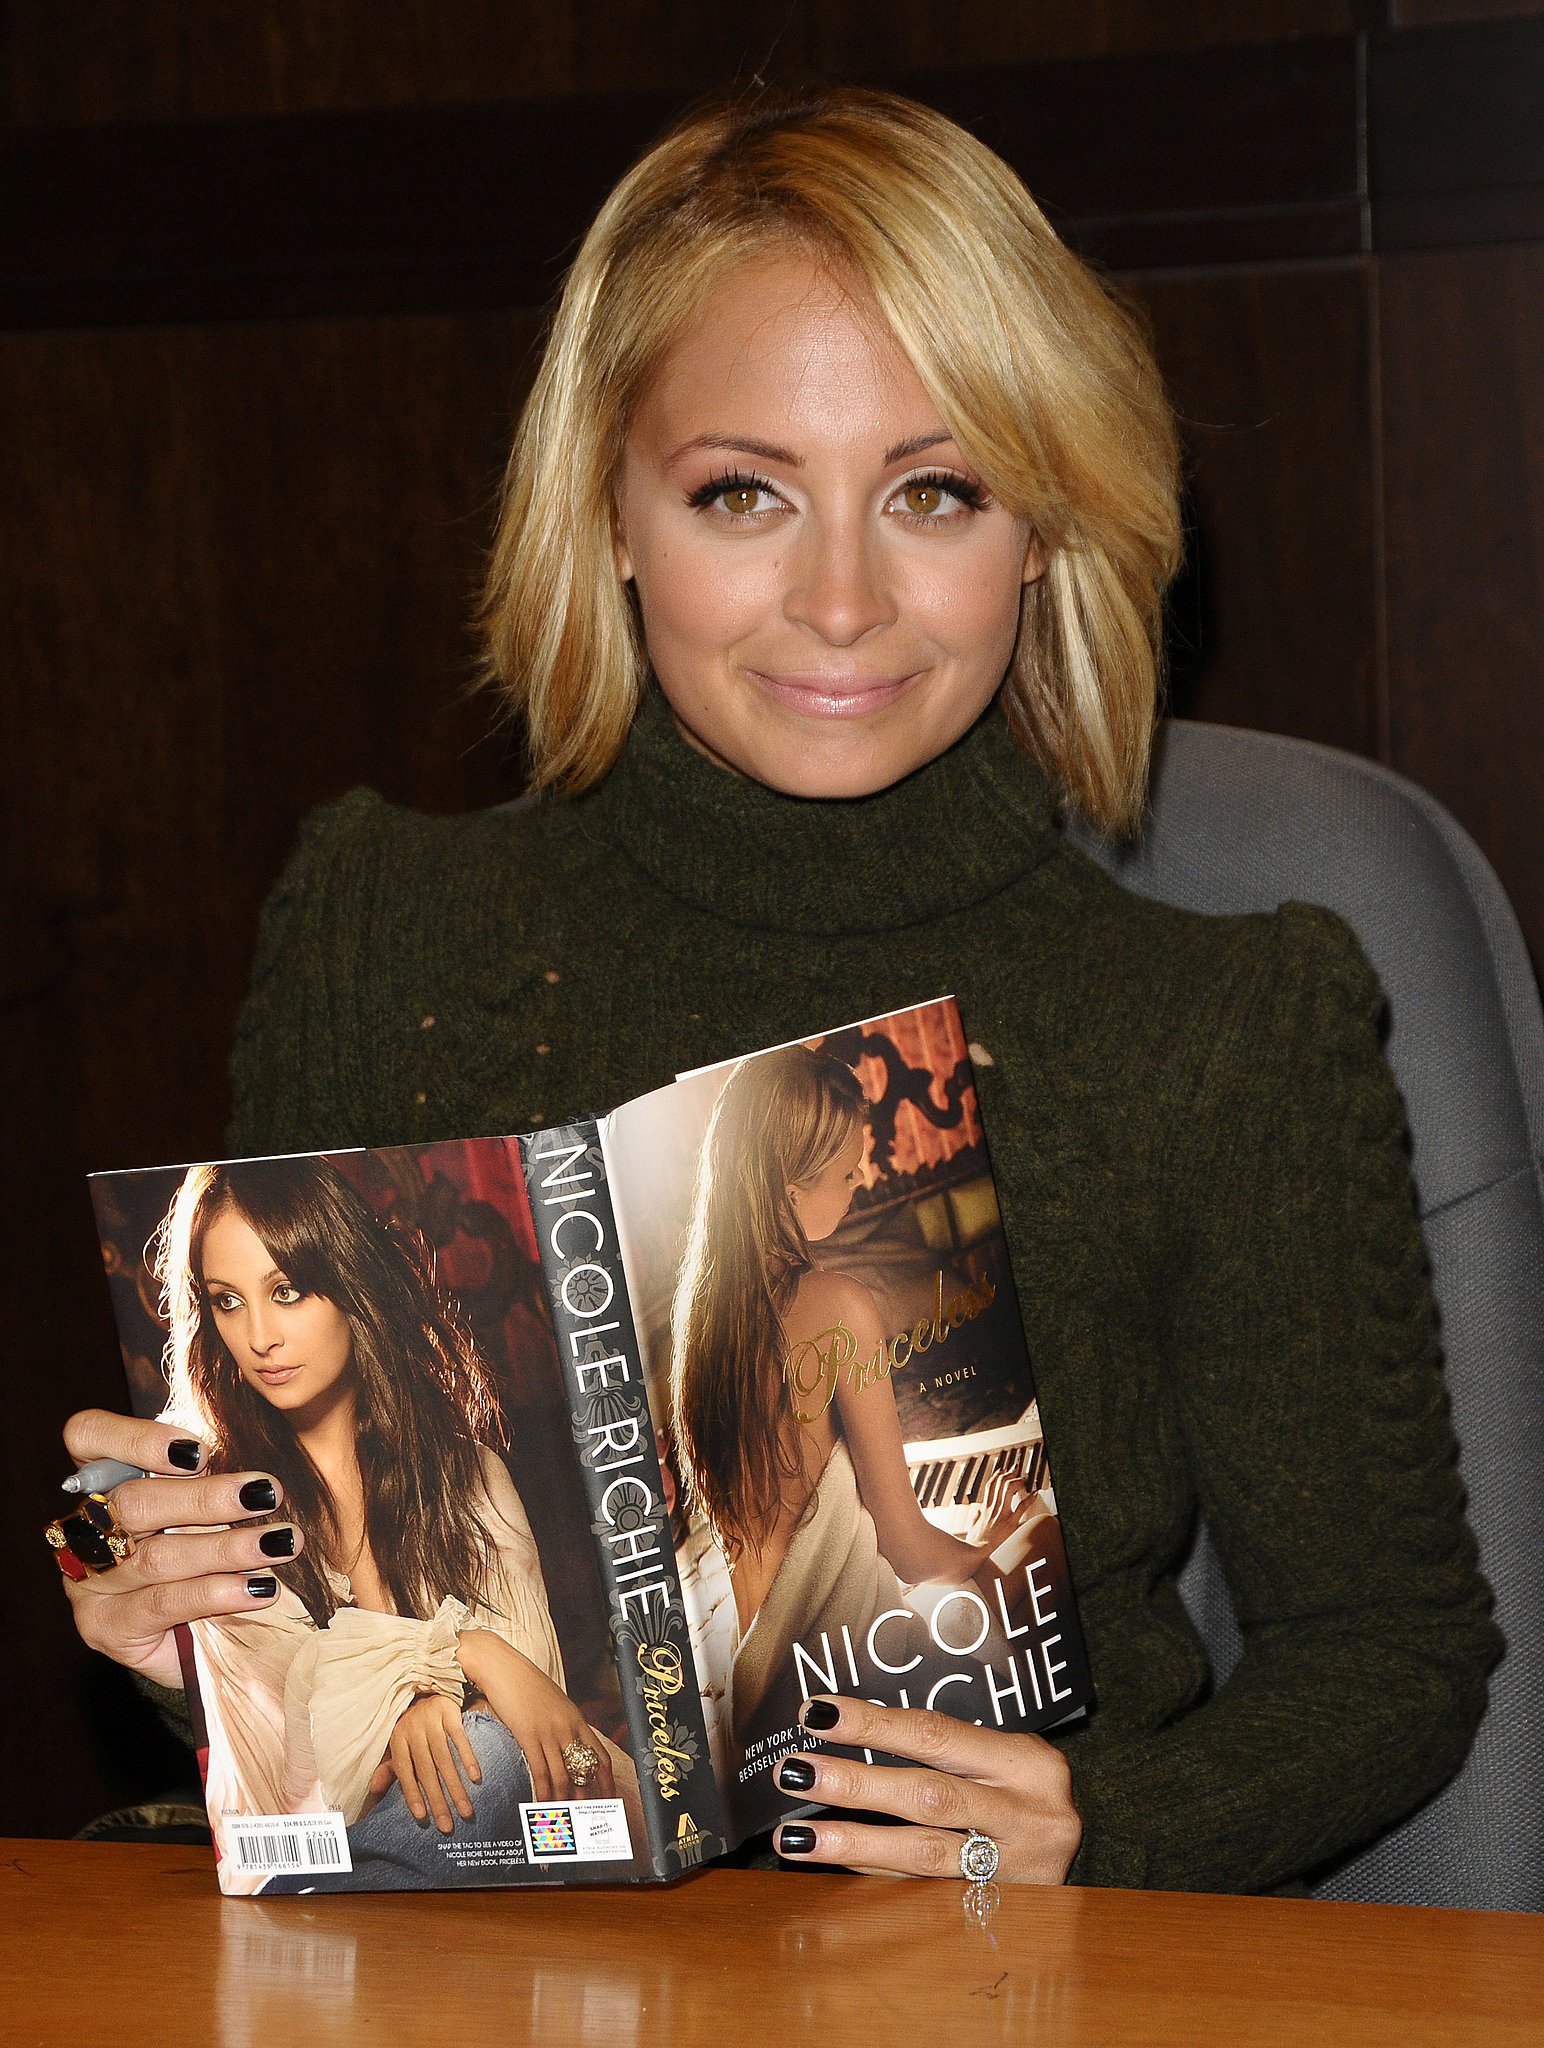 Nicole signed copies of her second book, Priceless, at an LA Barnes and Noble store in October 2010.